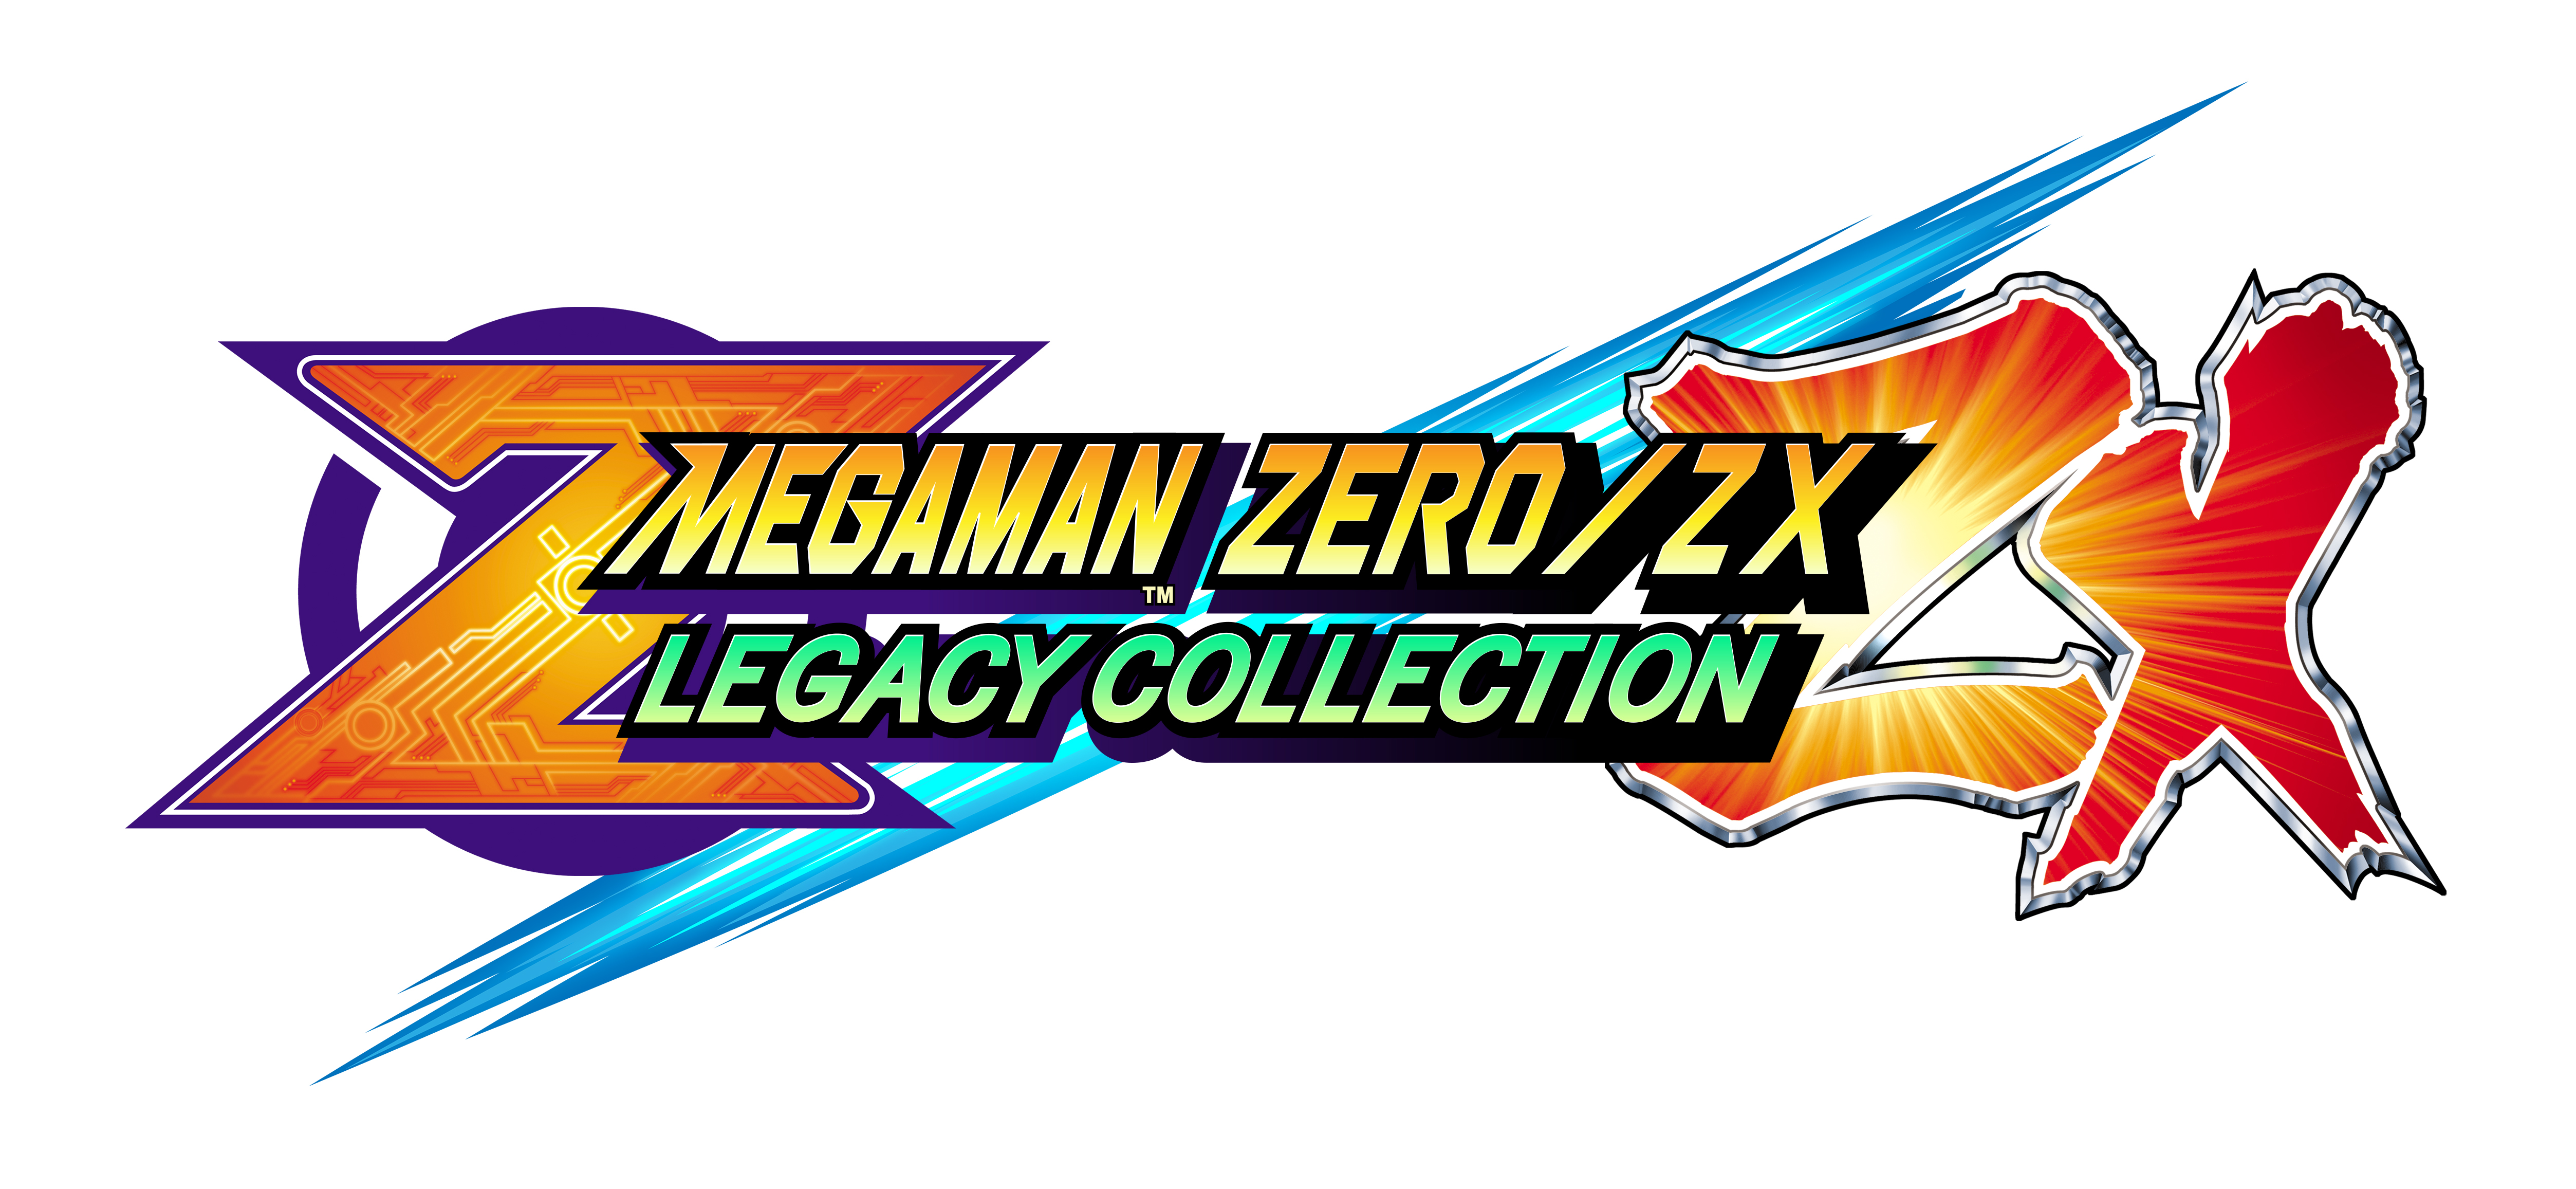 Mega Man Zero/ZX Legacy Collection coming to PC and consoles in January 2020